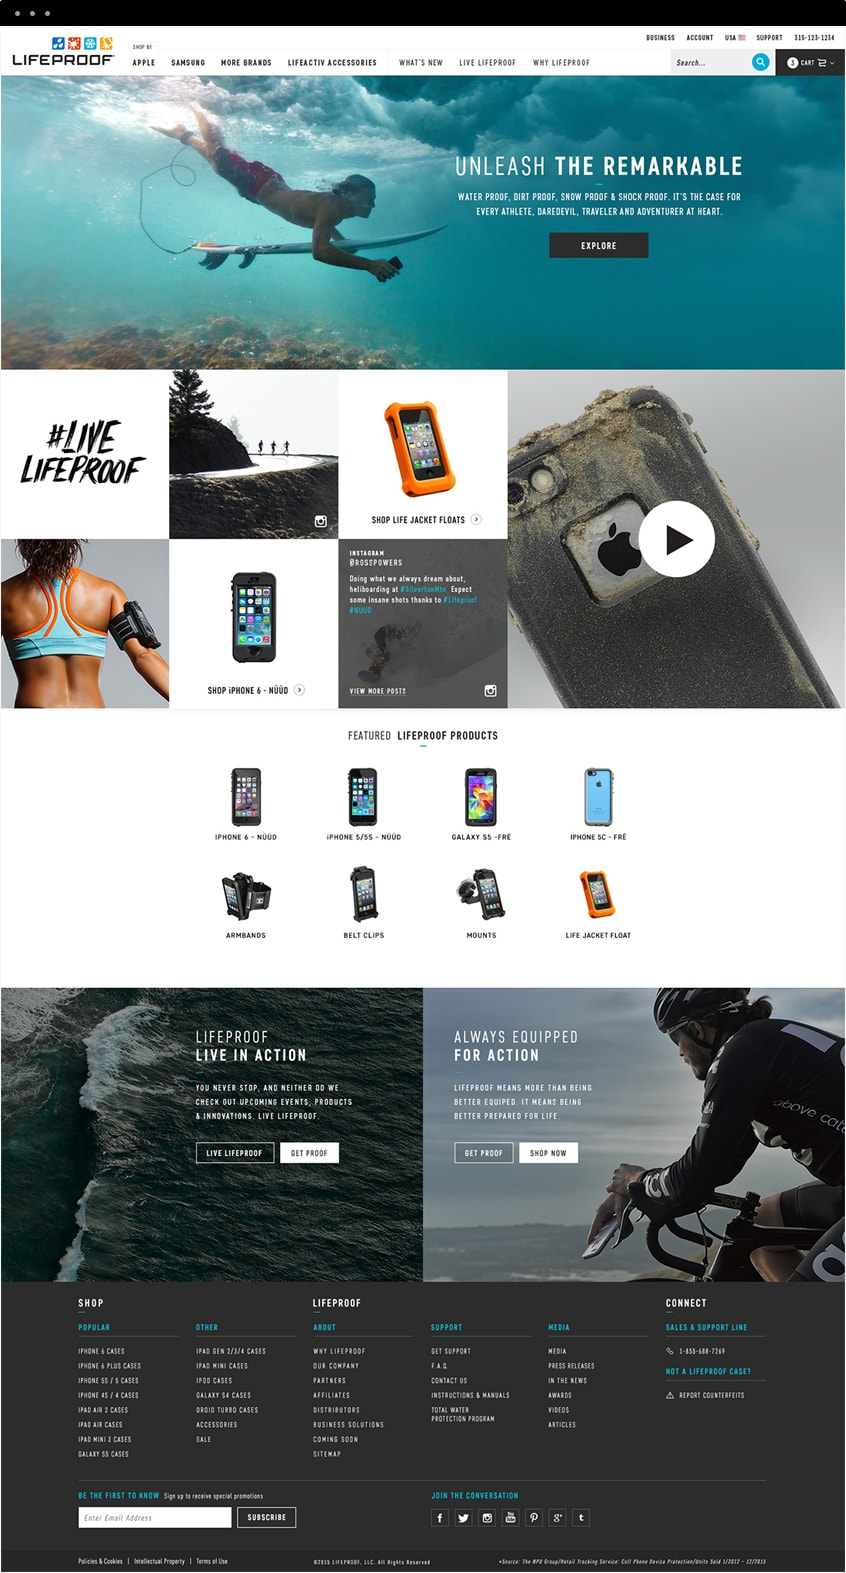 Lifeproof Homepage